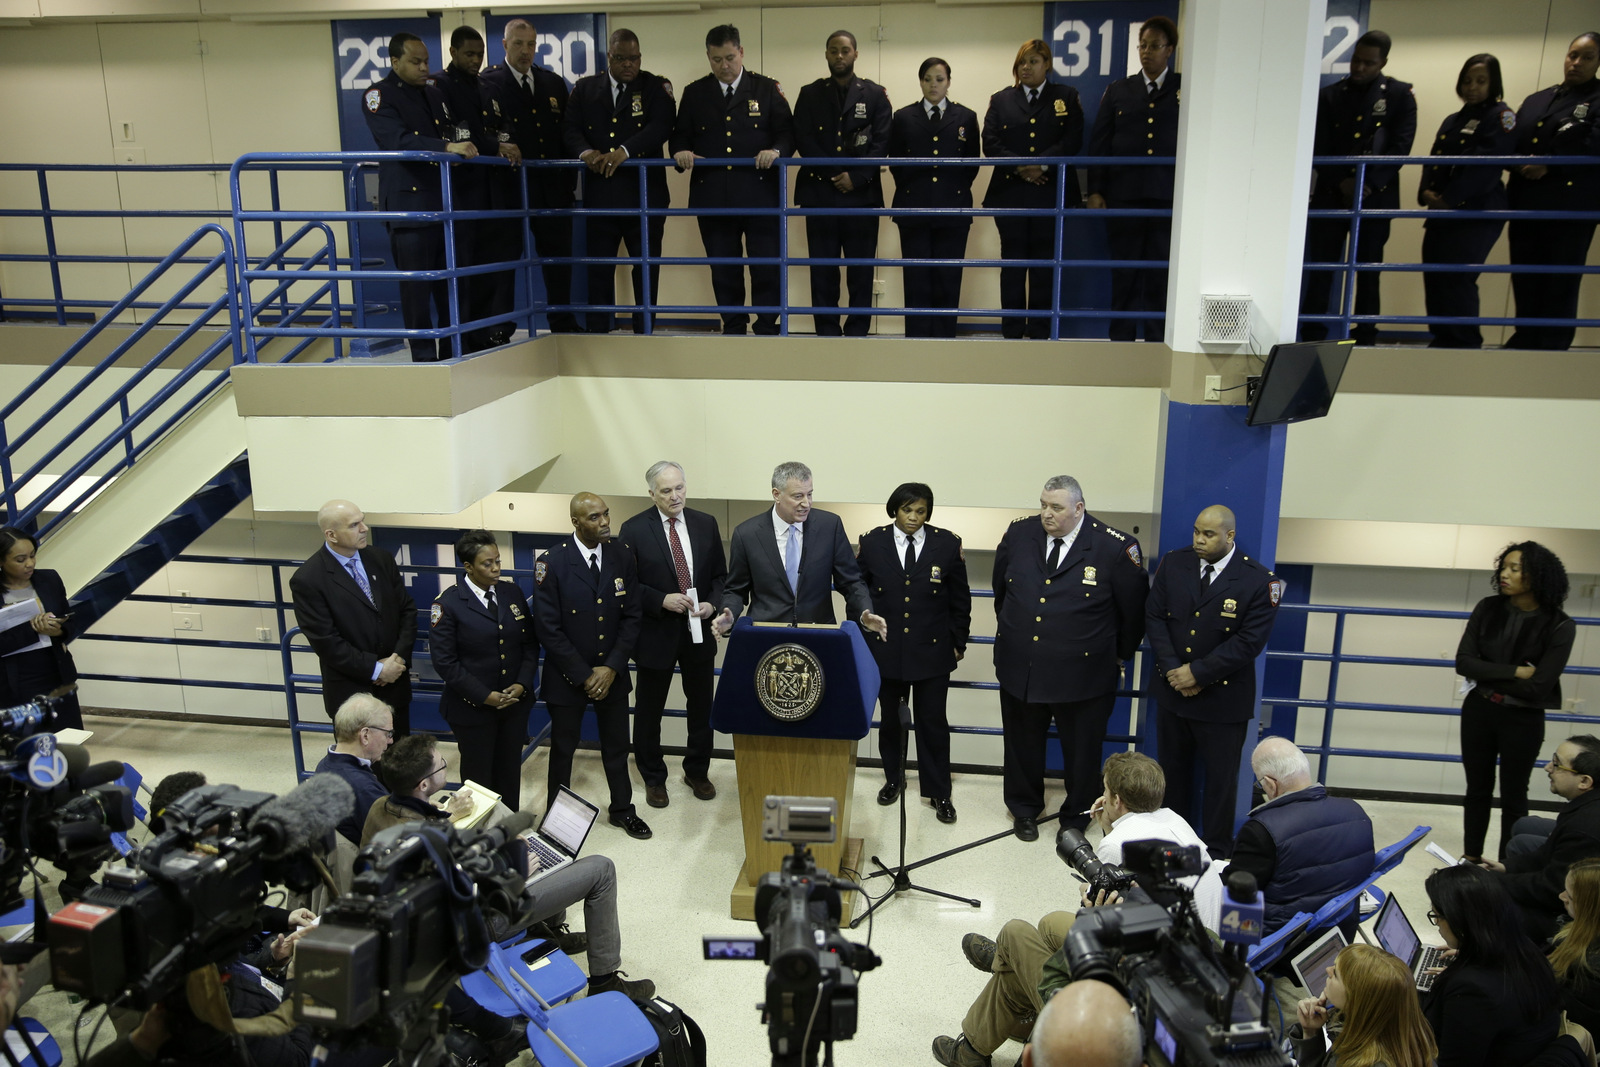 Surrounded by corrections officers, New York City Mayor Bill de Blasio holds a news conference on Rikers Island in New York, March 12, 2015. The mayor unveiled a plan to curb jail violence after a visit to the problem-plagued Rikers Island jail complex. (AP/Seth Wenig)